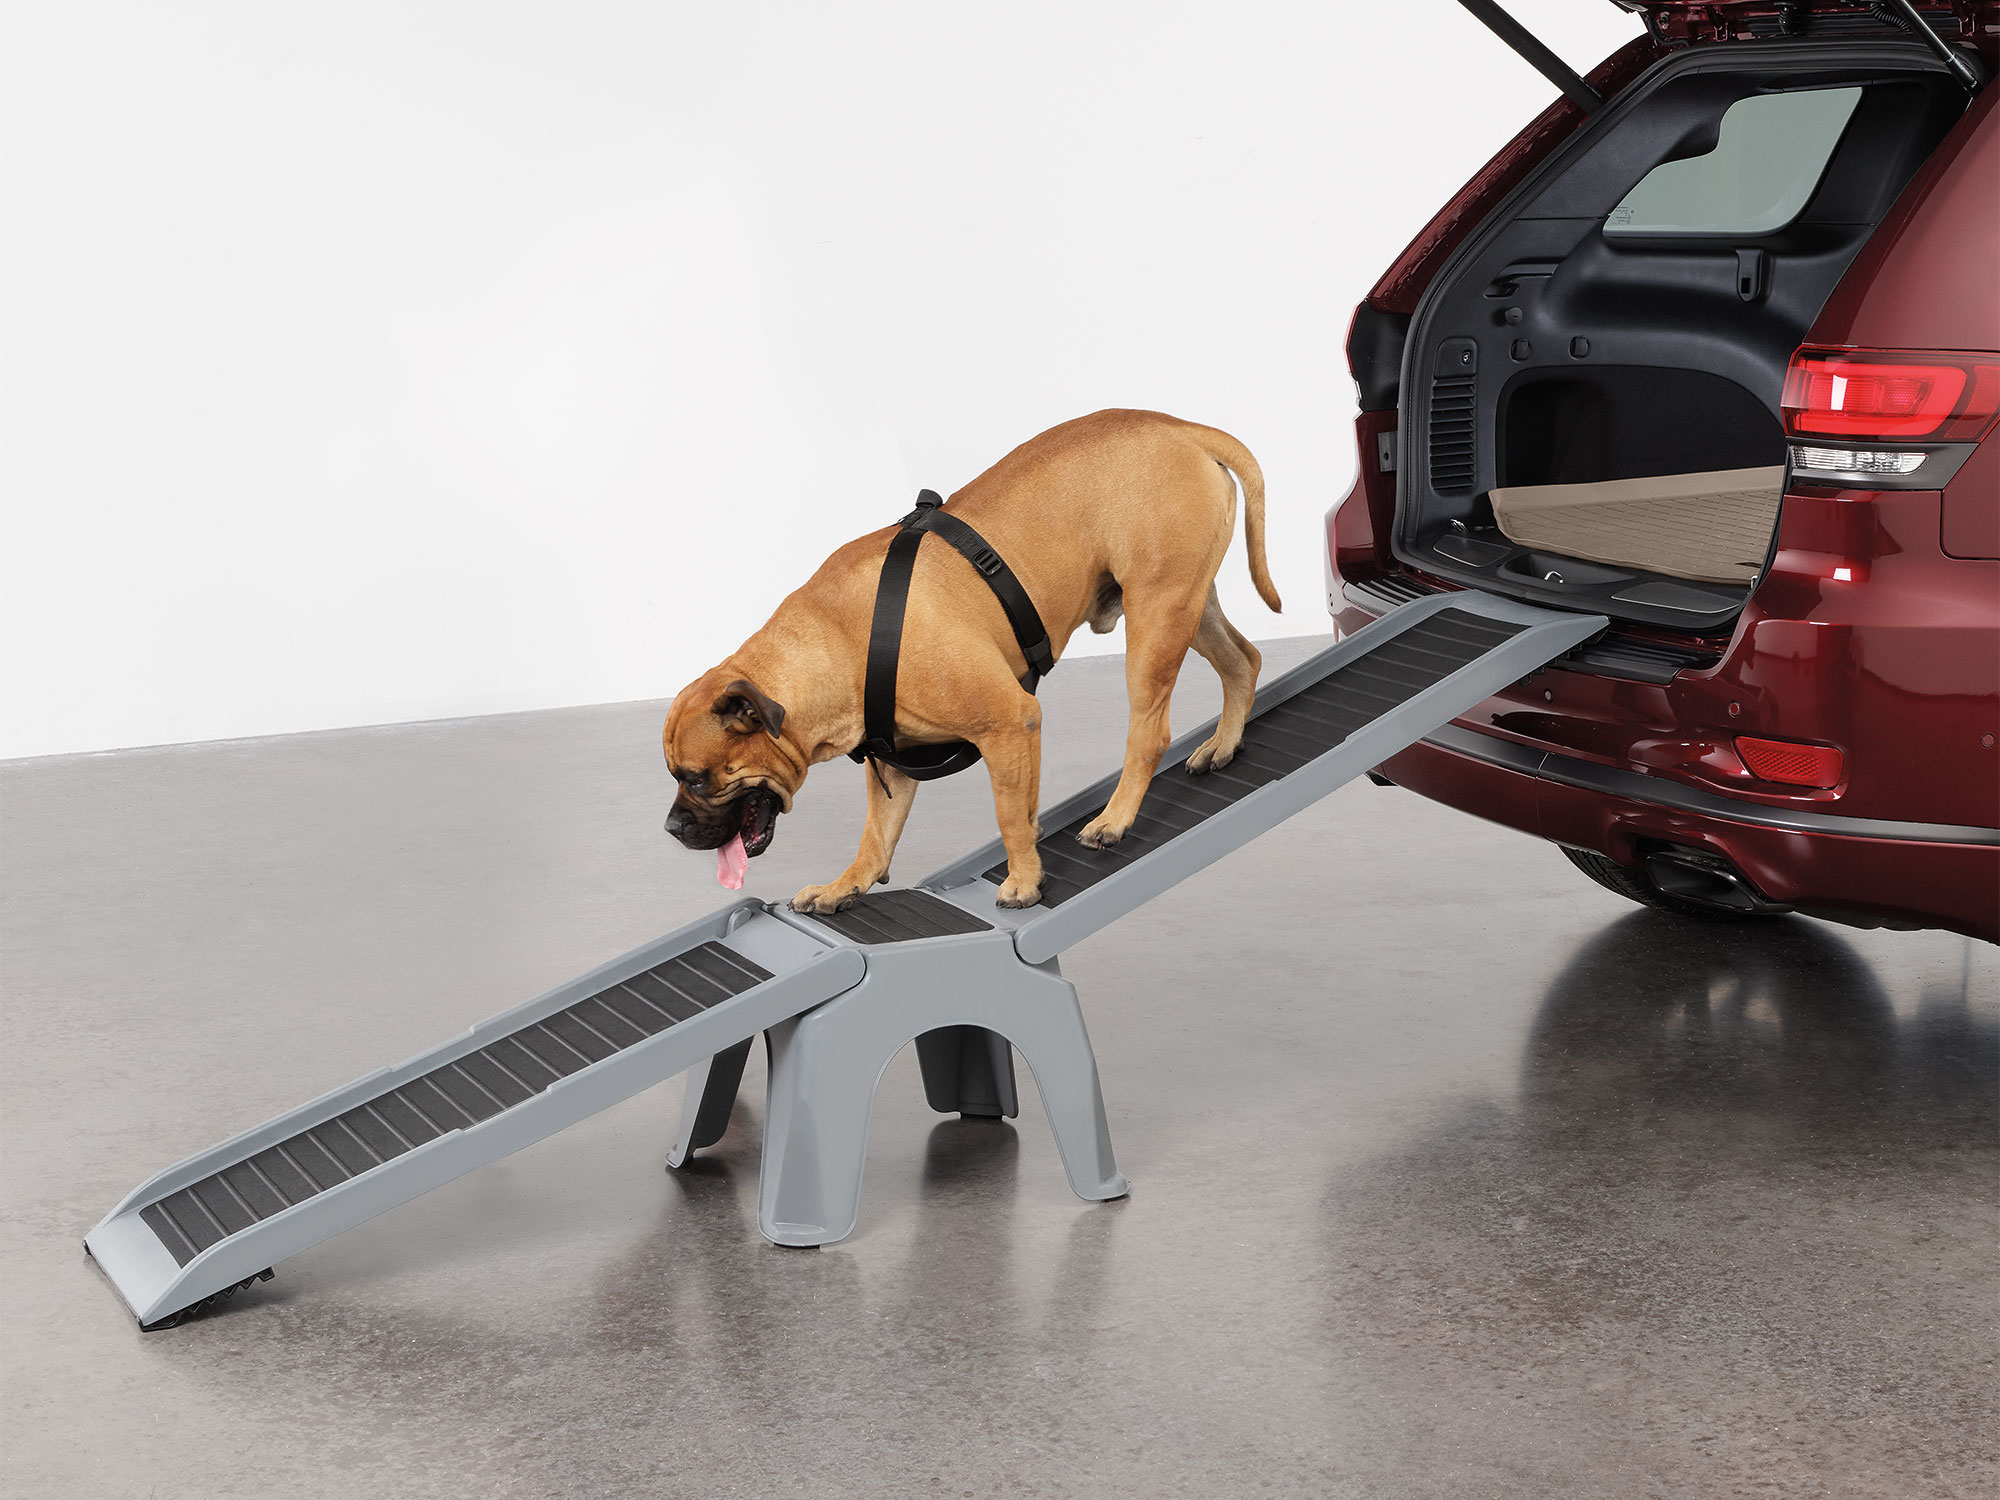 The WeatherTech EasyRamp is the perfect dog ramp for larger vehicles, or higher areas that might normally be out of reach.